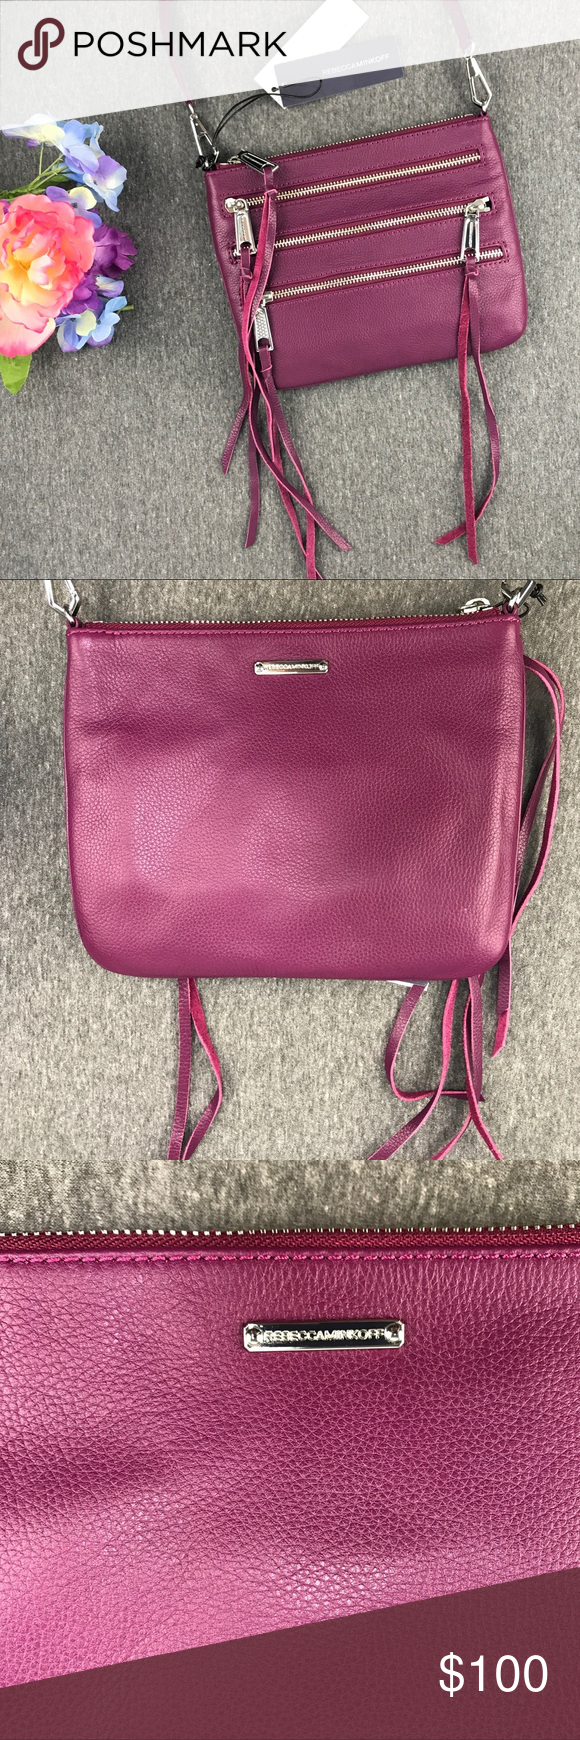 f688dbe81a NWT Rebecca Minkoff 3 Zip Rocker Crossbody A cute and simple fuschia  crossbody with two front zip pockets and a decorative zip all accented with  tassels!